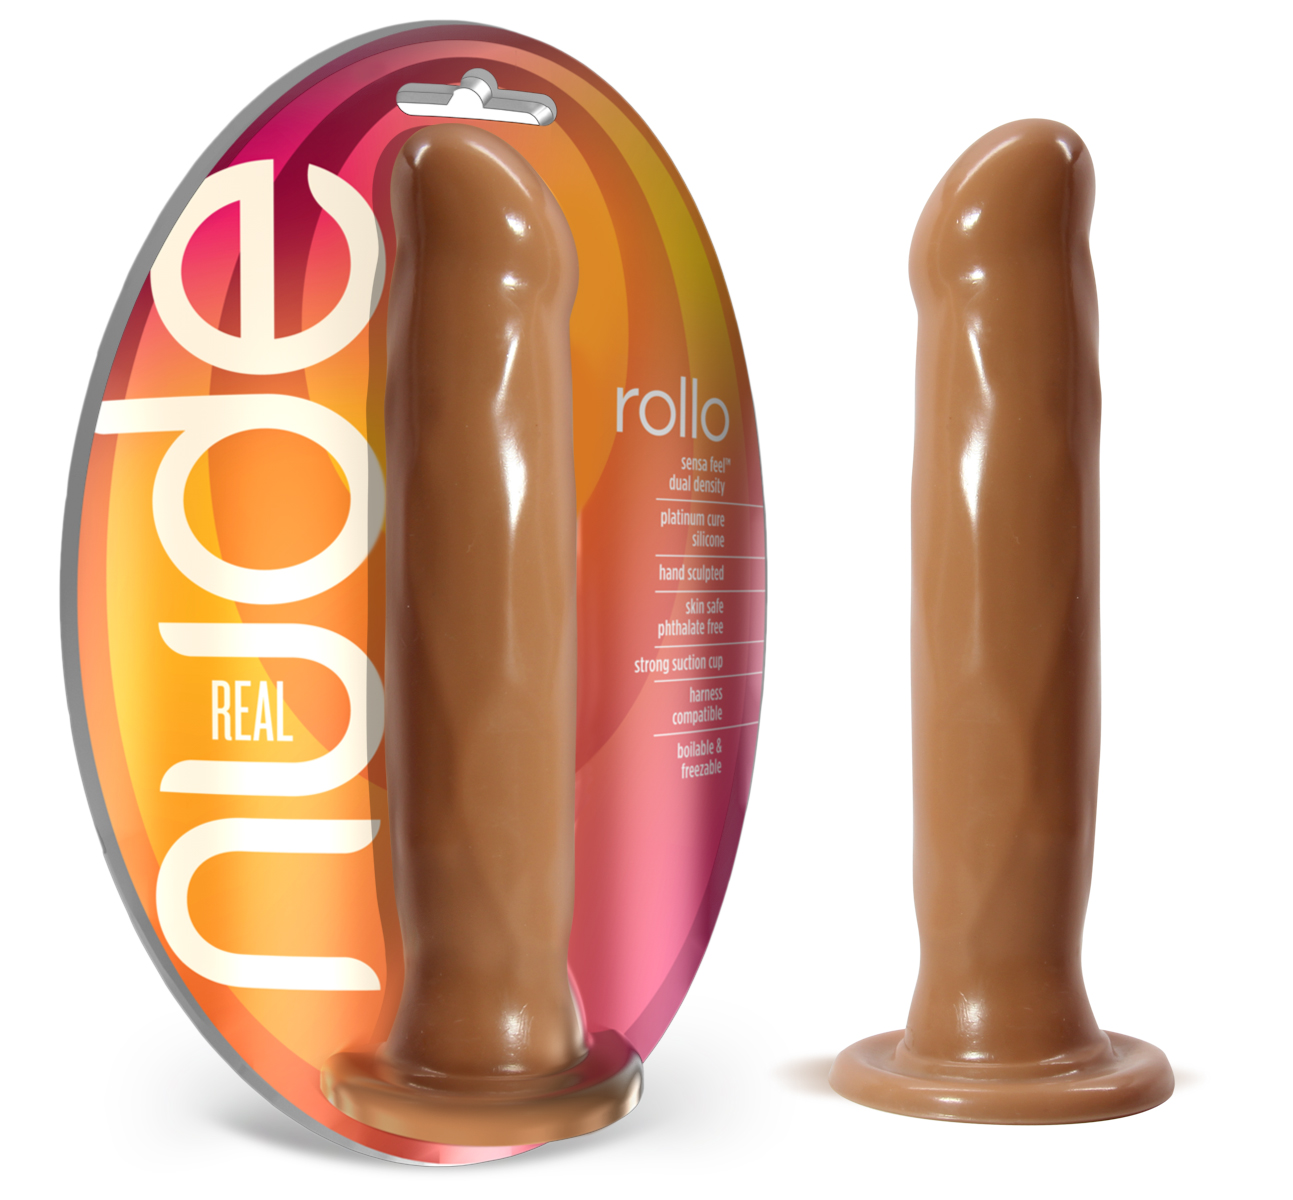 Real Nude - Rollo - Toffee